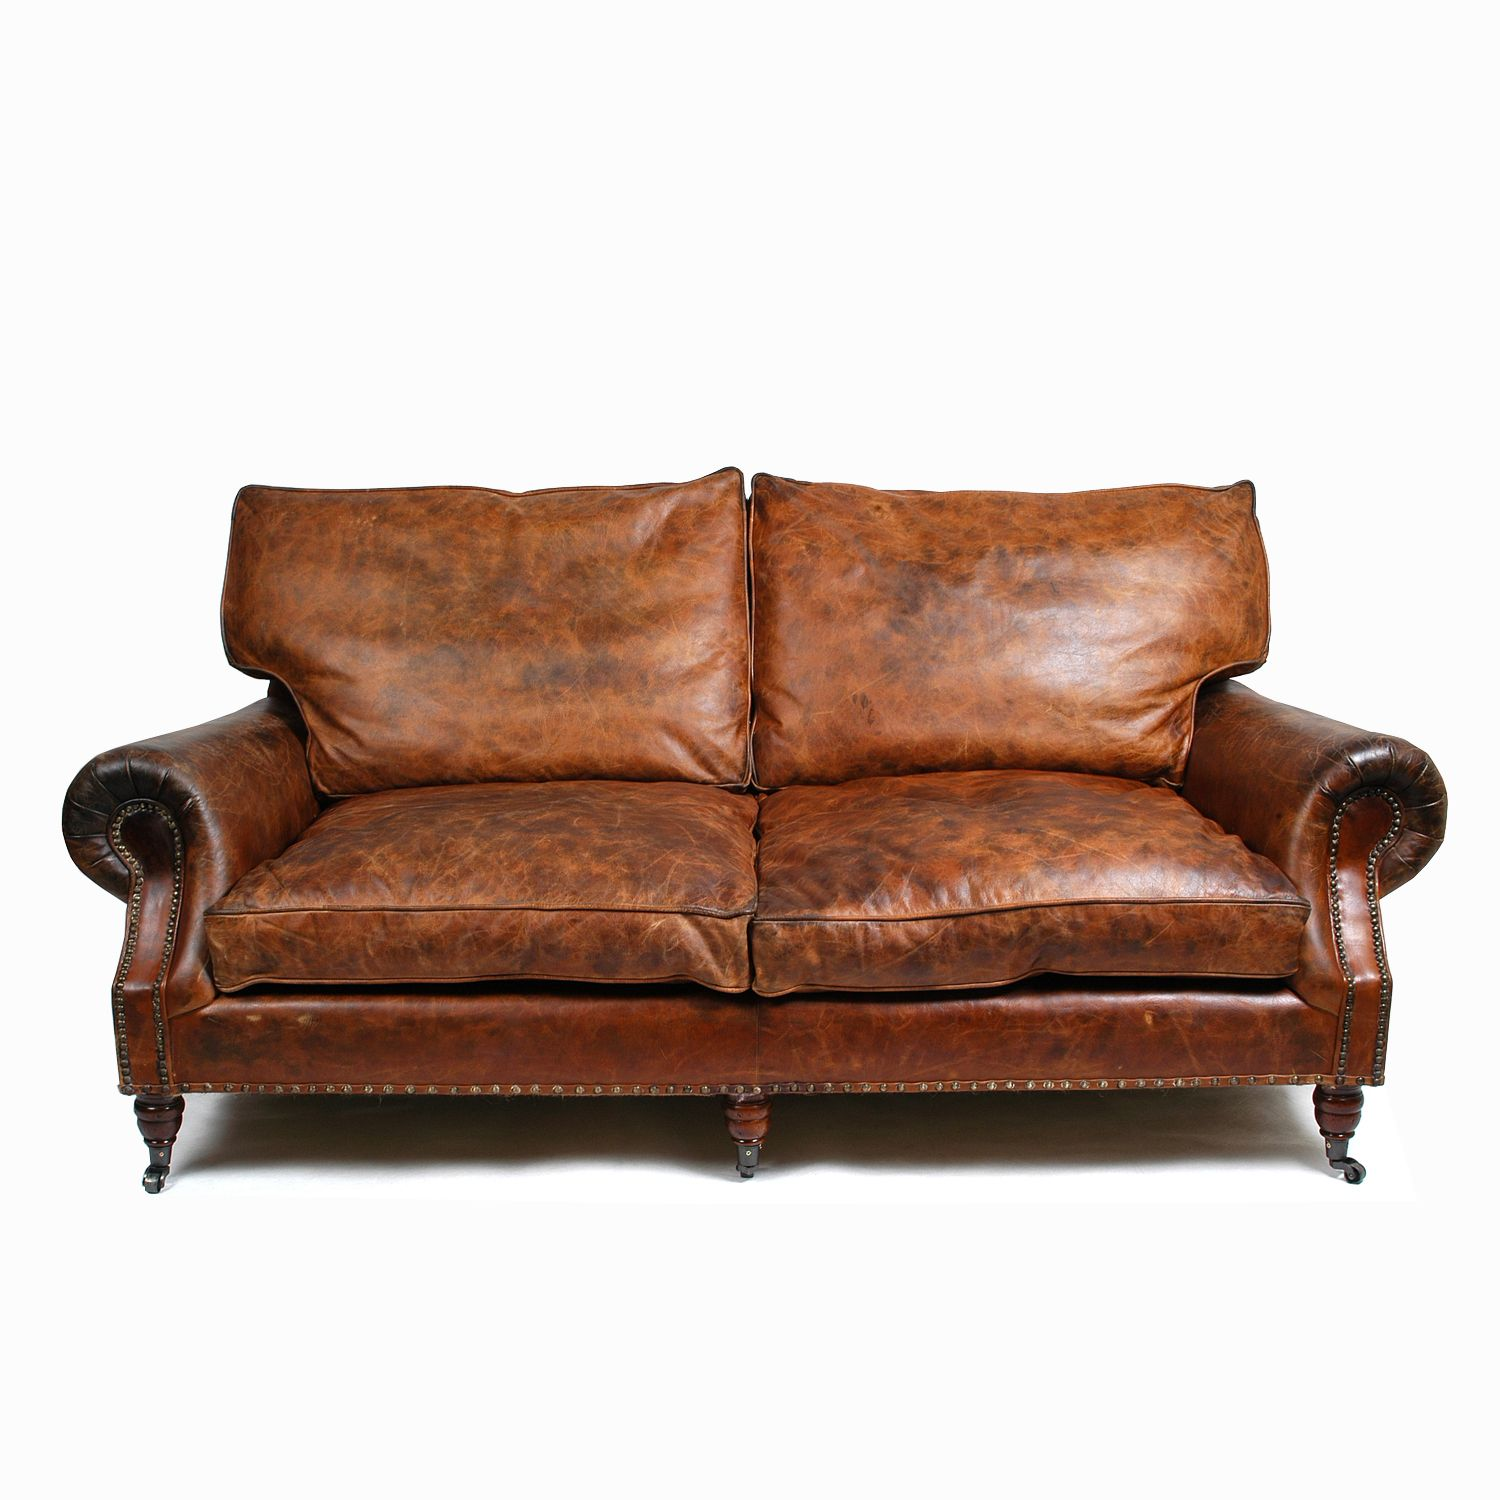 Balmoral 3 Seater Sofa - Cigar Material: Uncorrected Aniline Leather  Colour: Vintage Leather Cigar